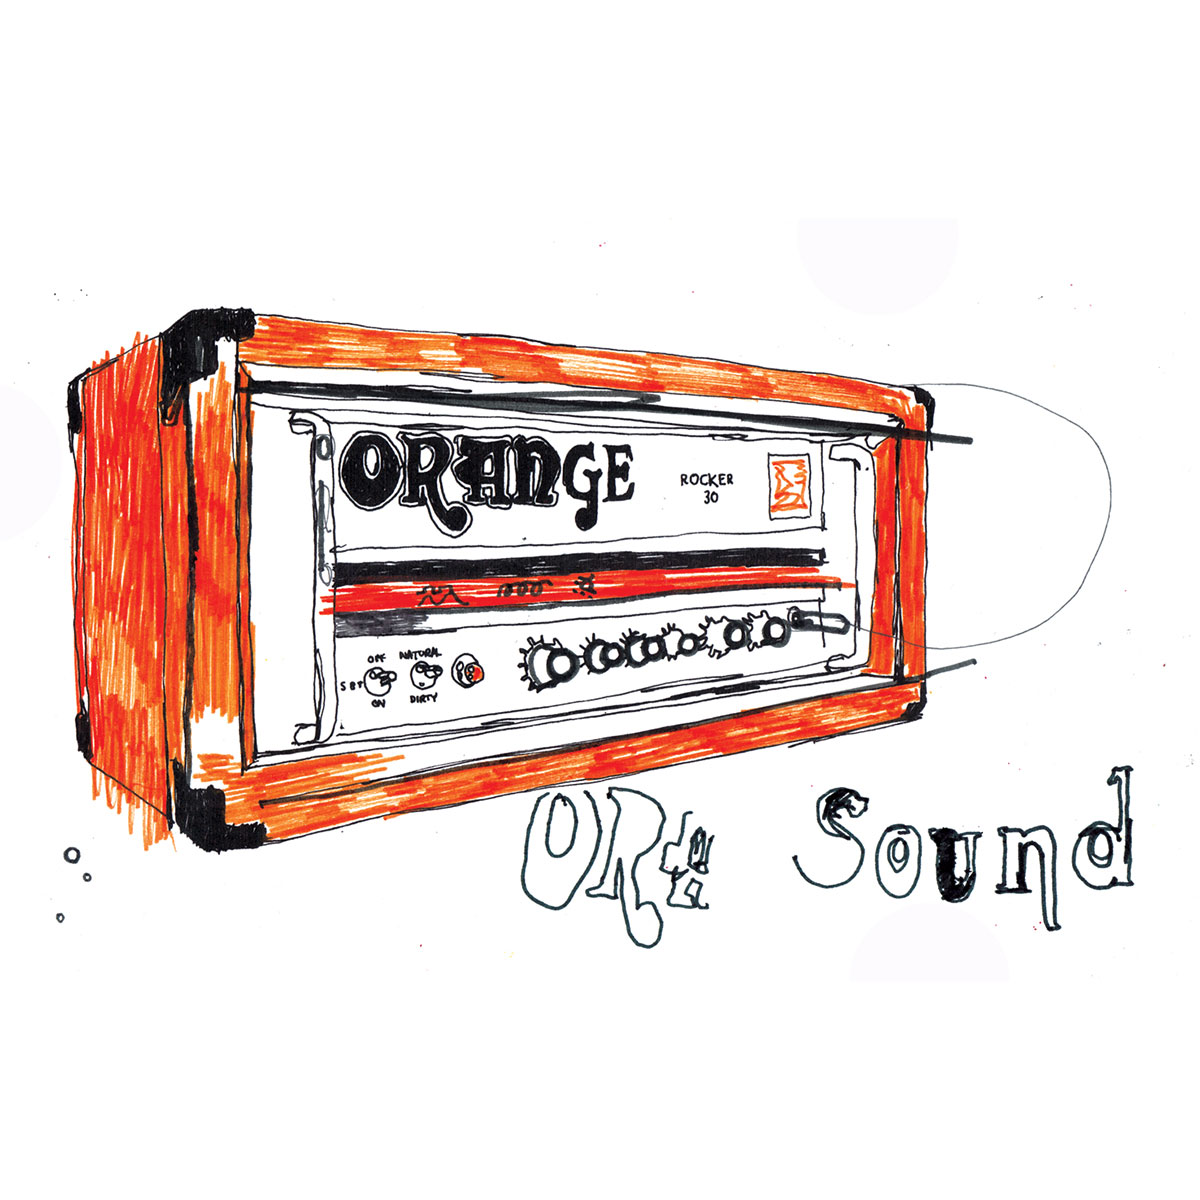 Orange amp, amplifier, hand drawn illustration, lettering, design, artwork Ben Tallon